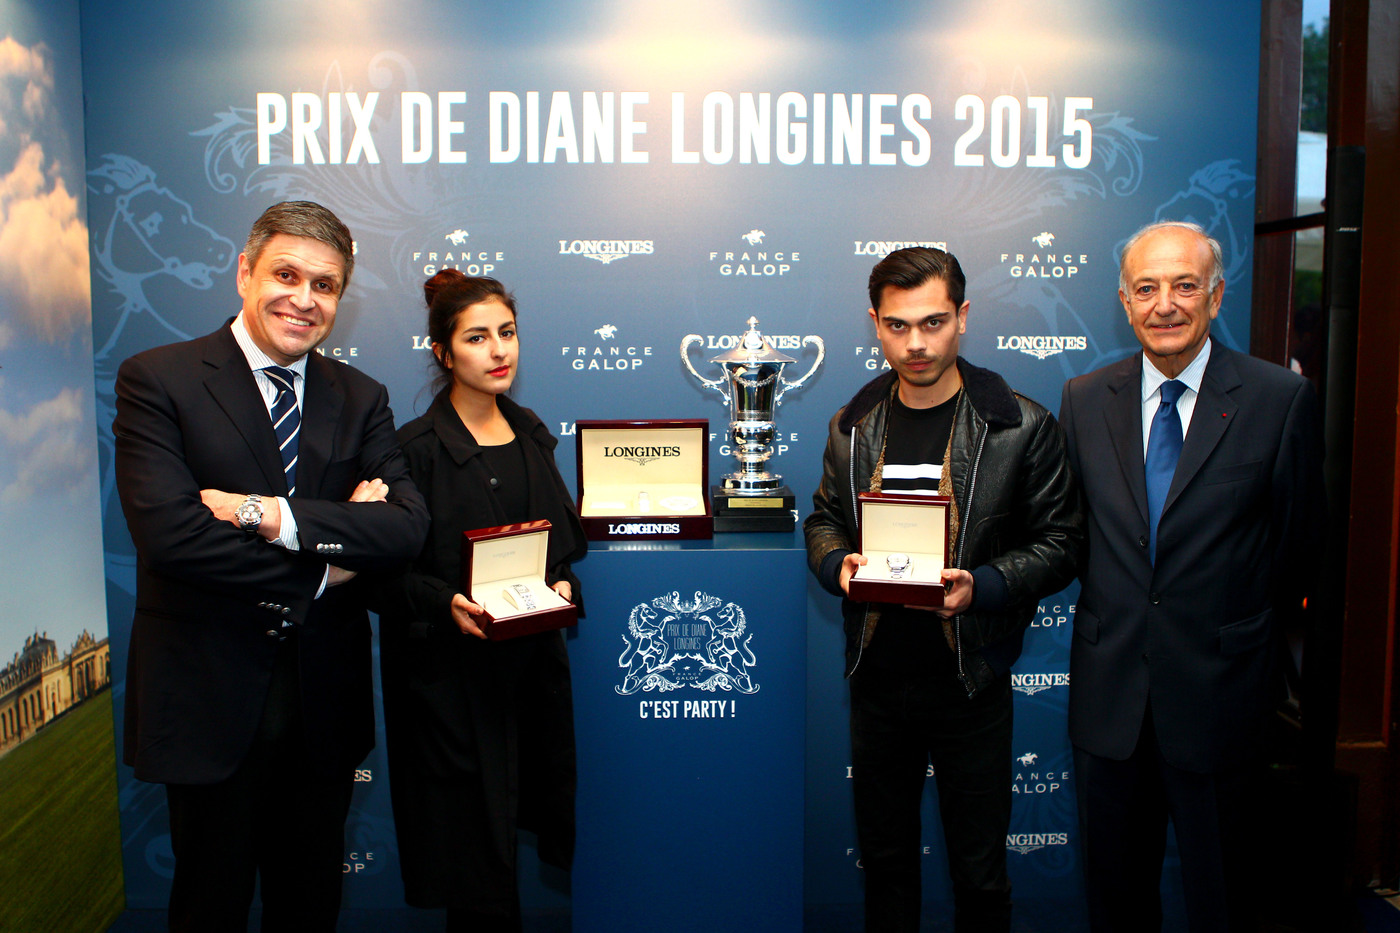 Longines Flat Racing Event: The Prix de Diane Longines 2015: Races, Elegance and Wonders in Chantilly 3